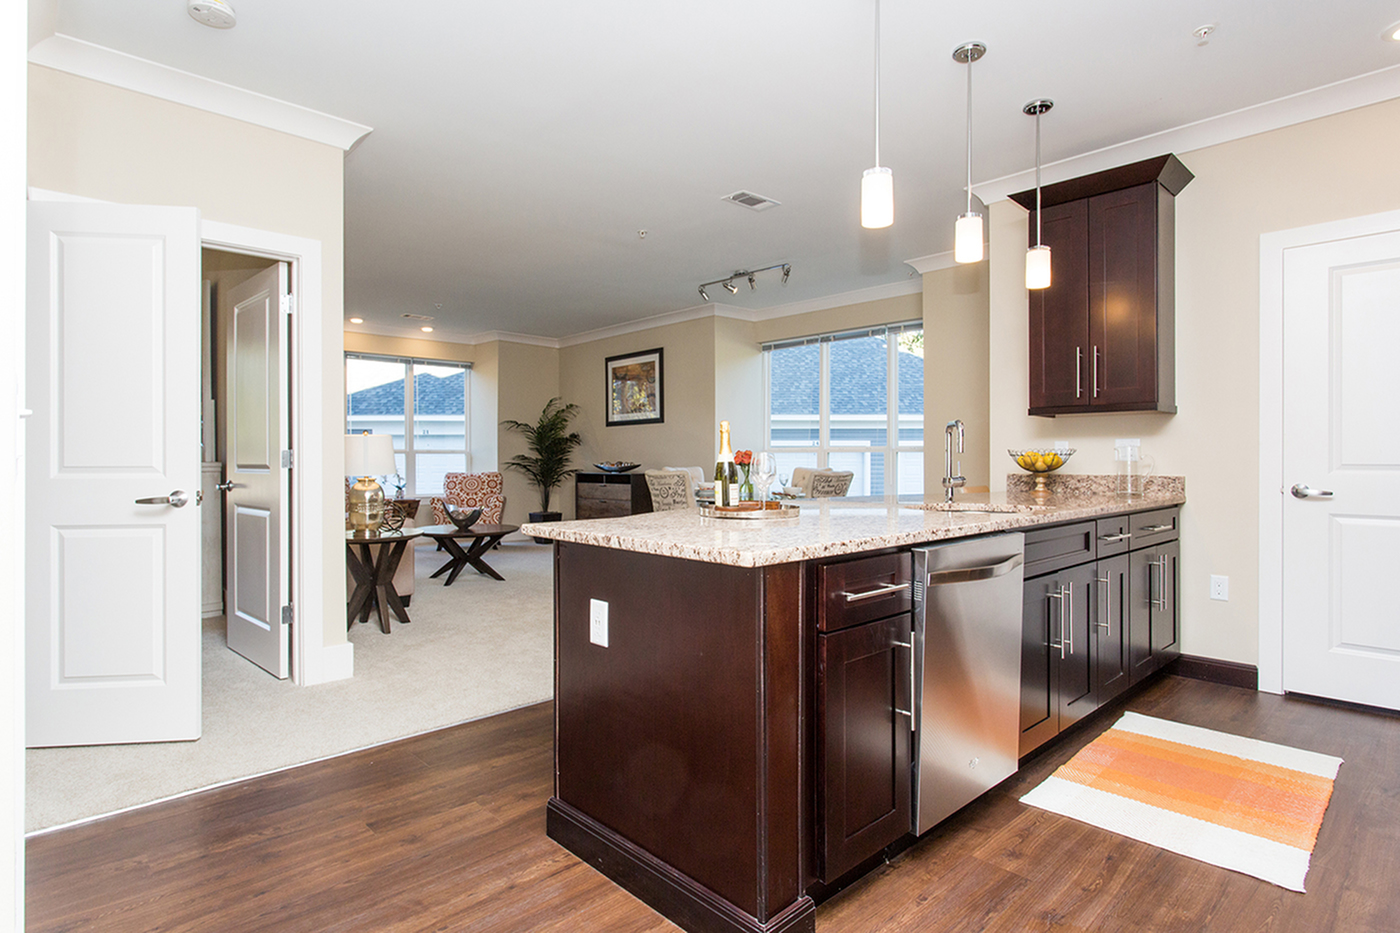 Modern Kitchen and Living Area